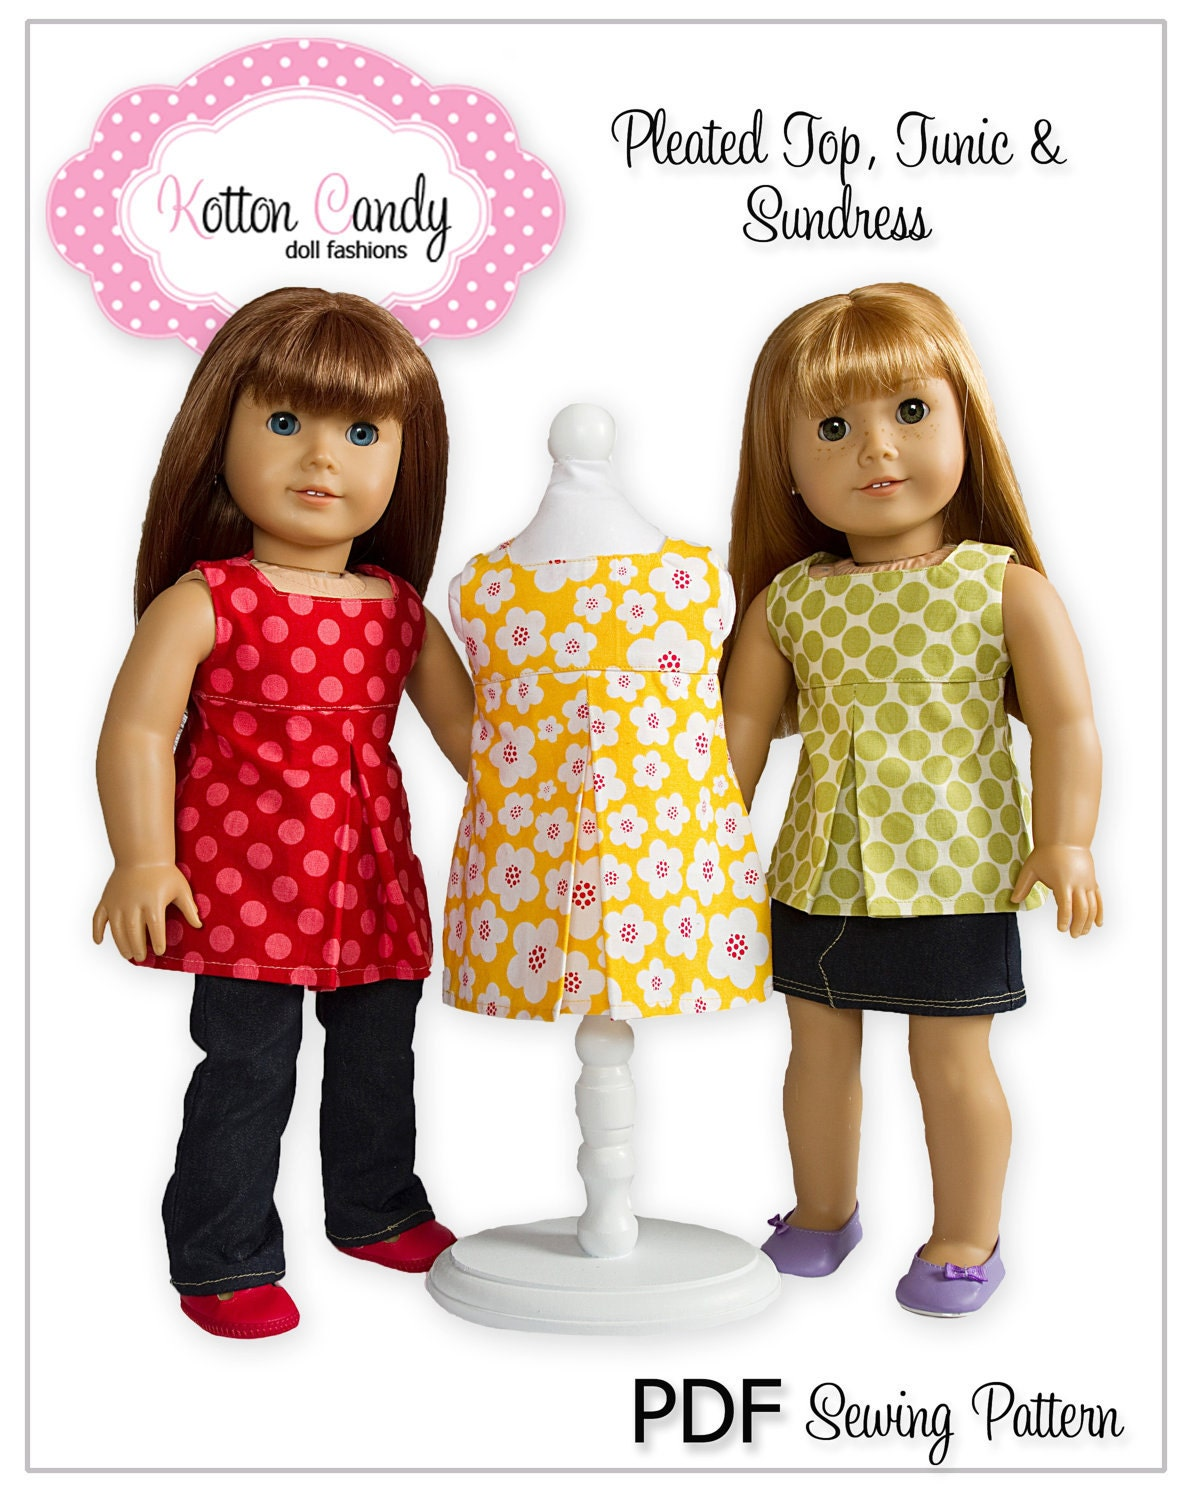 Pdf Sewing Pattern For 18 American Girl Doll Clothes